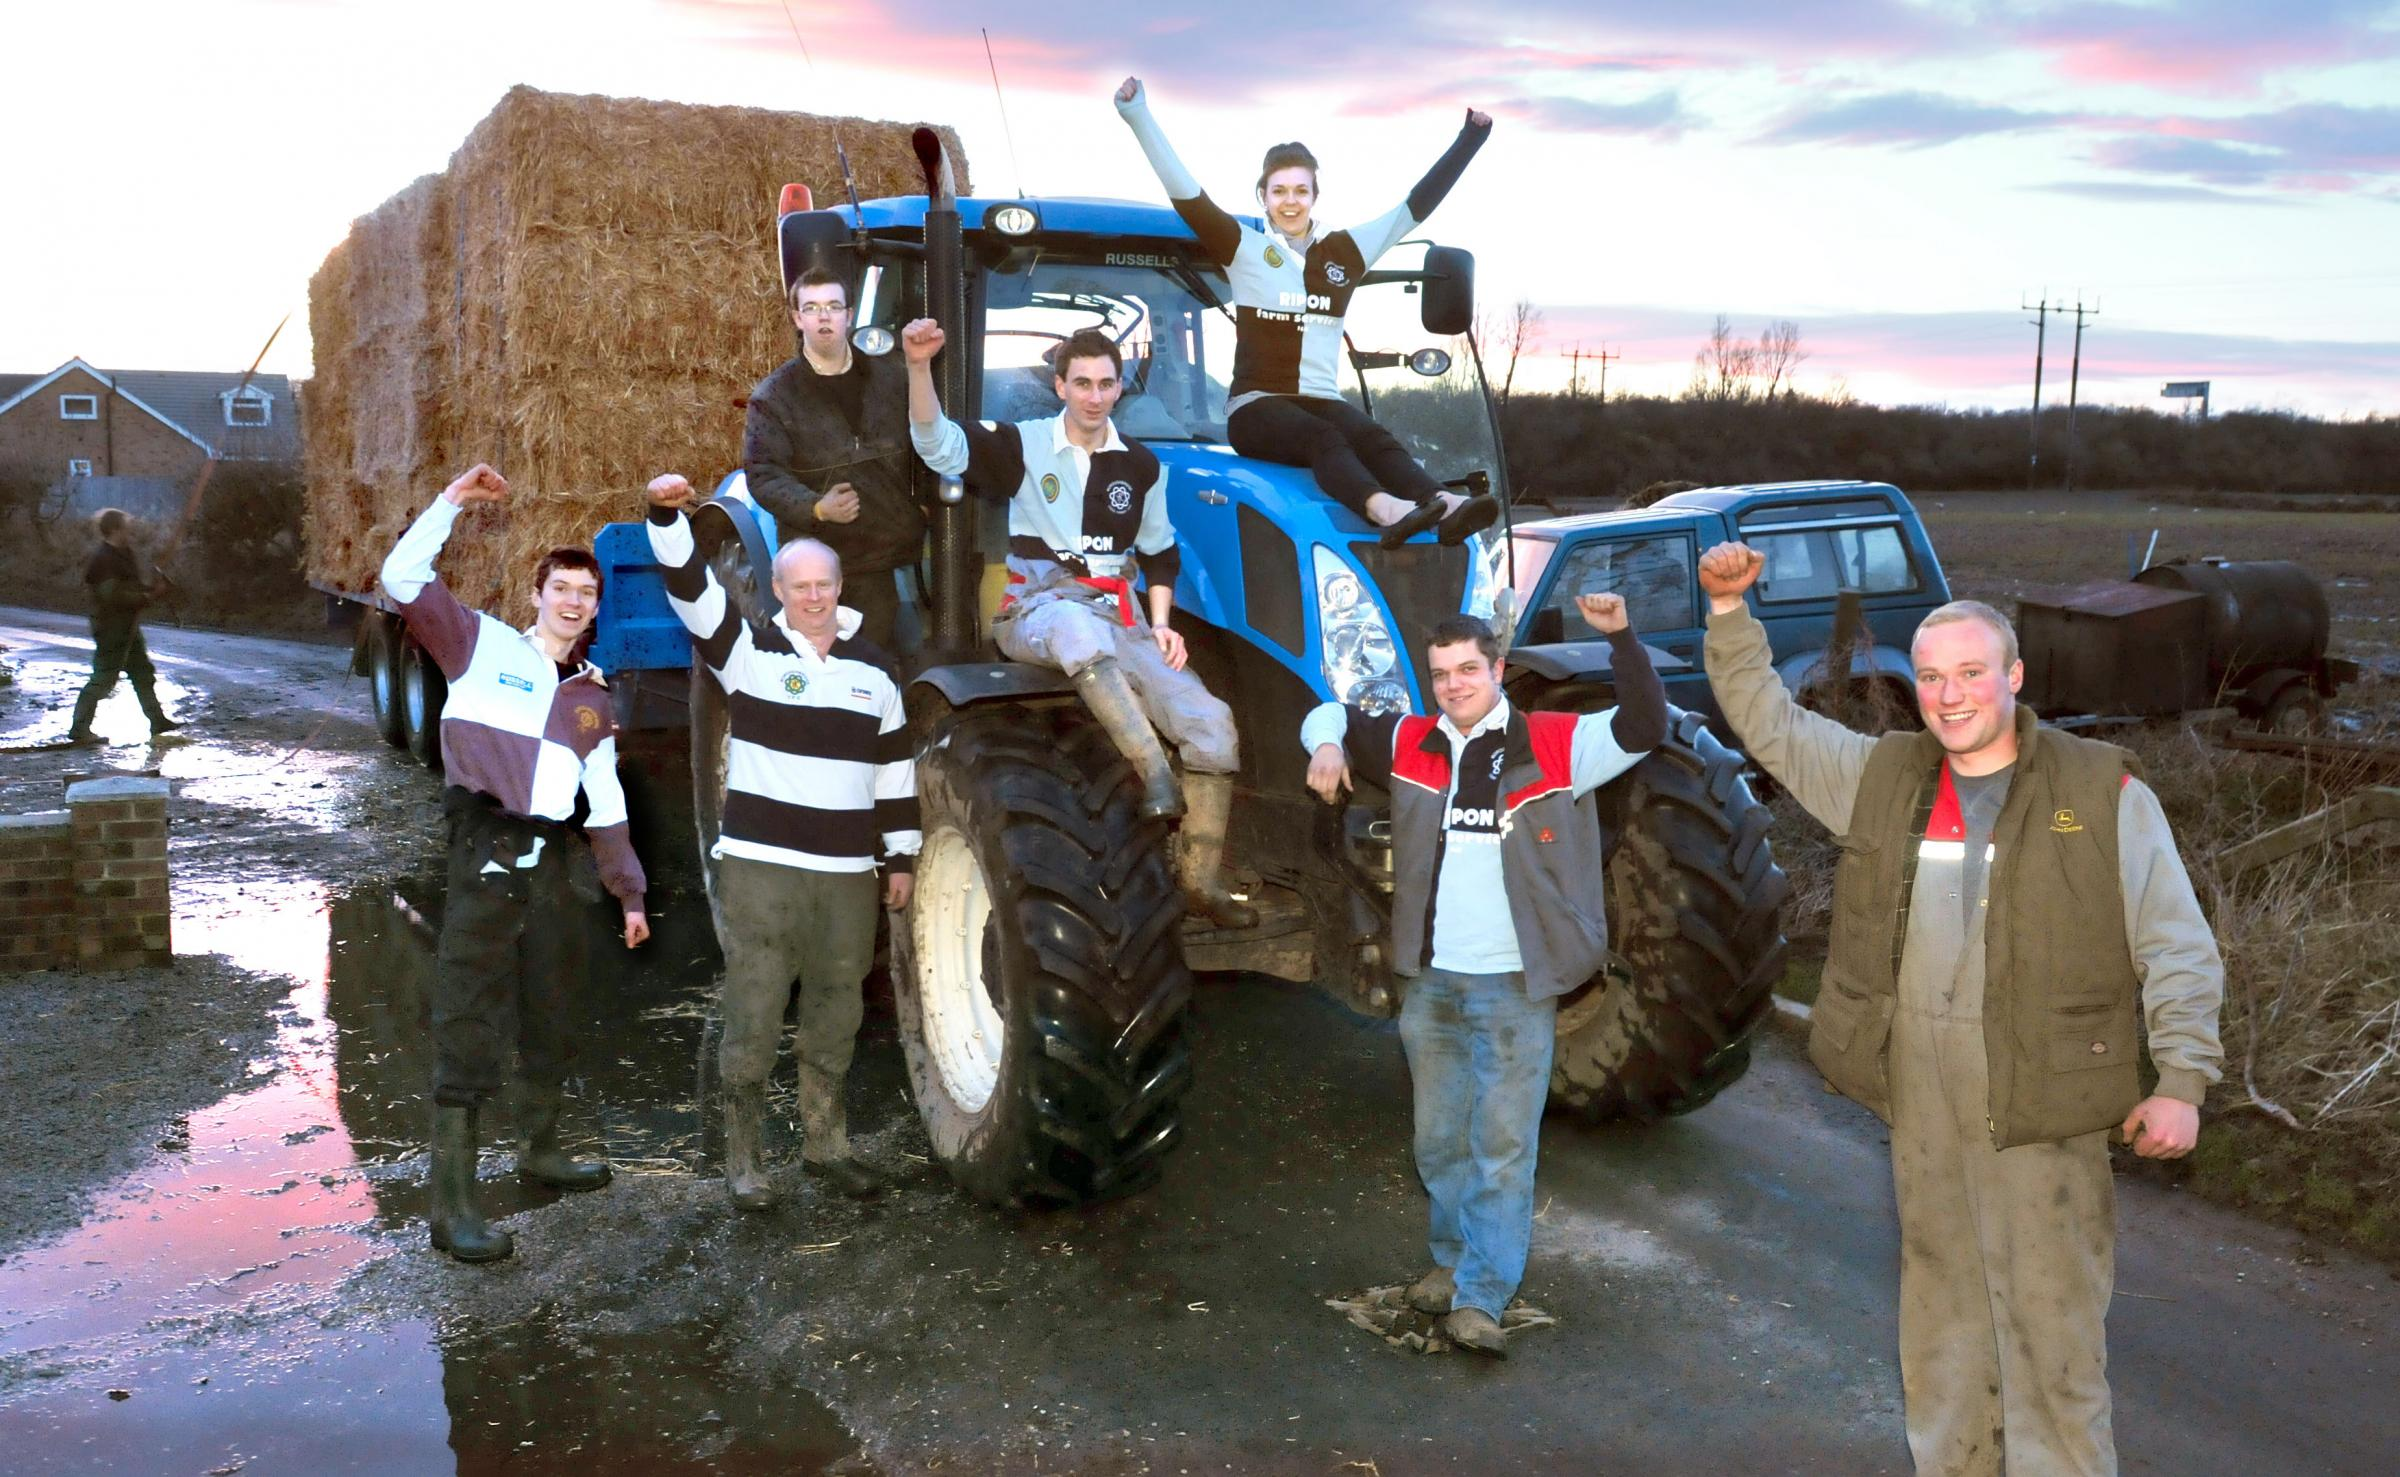 North Yorkshire farmers pitch in with flood relief